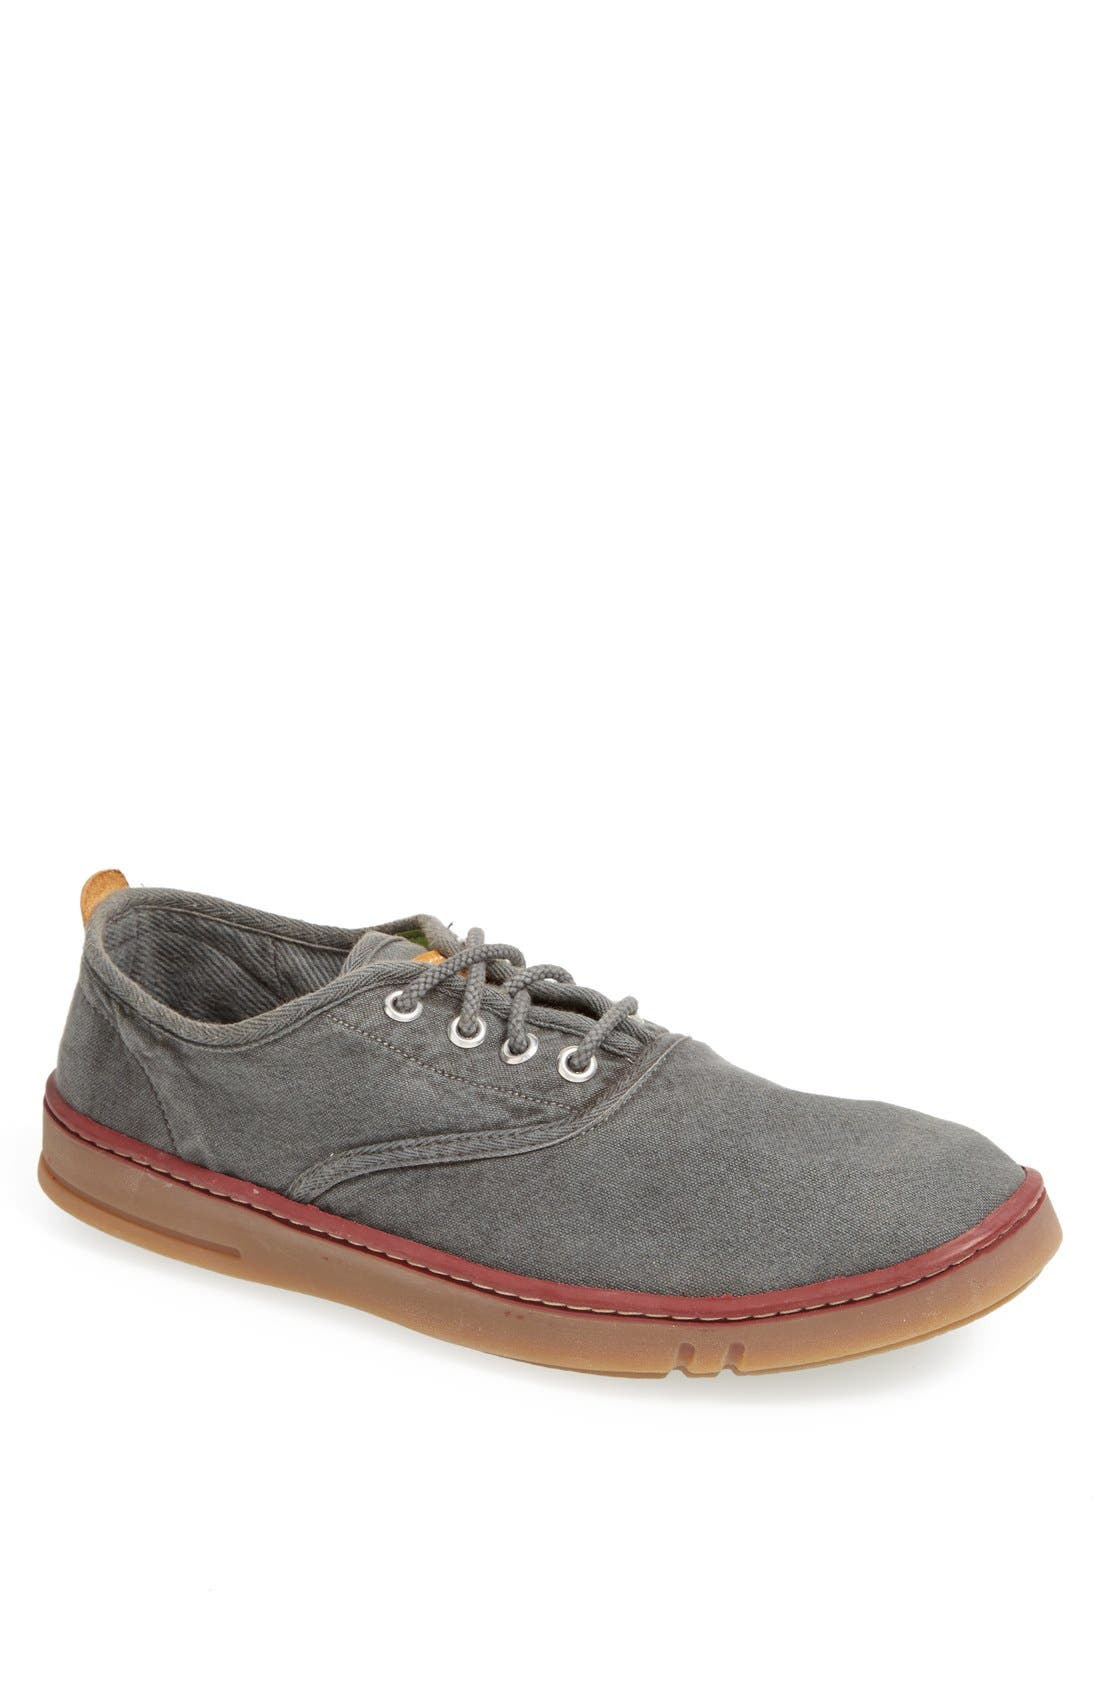 Alternate Image 1 Selected - Timberland Earthkeepers® 'Hookset' Oxford Sneaker